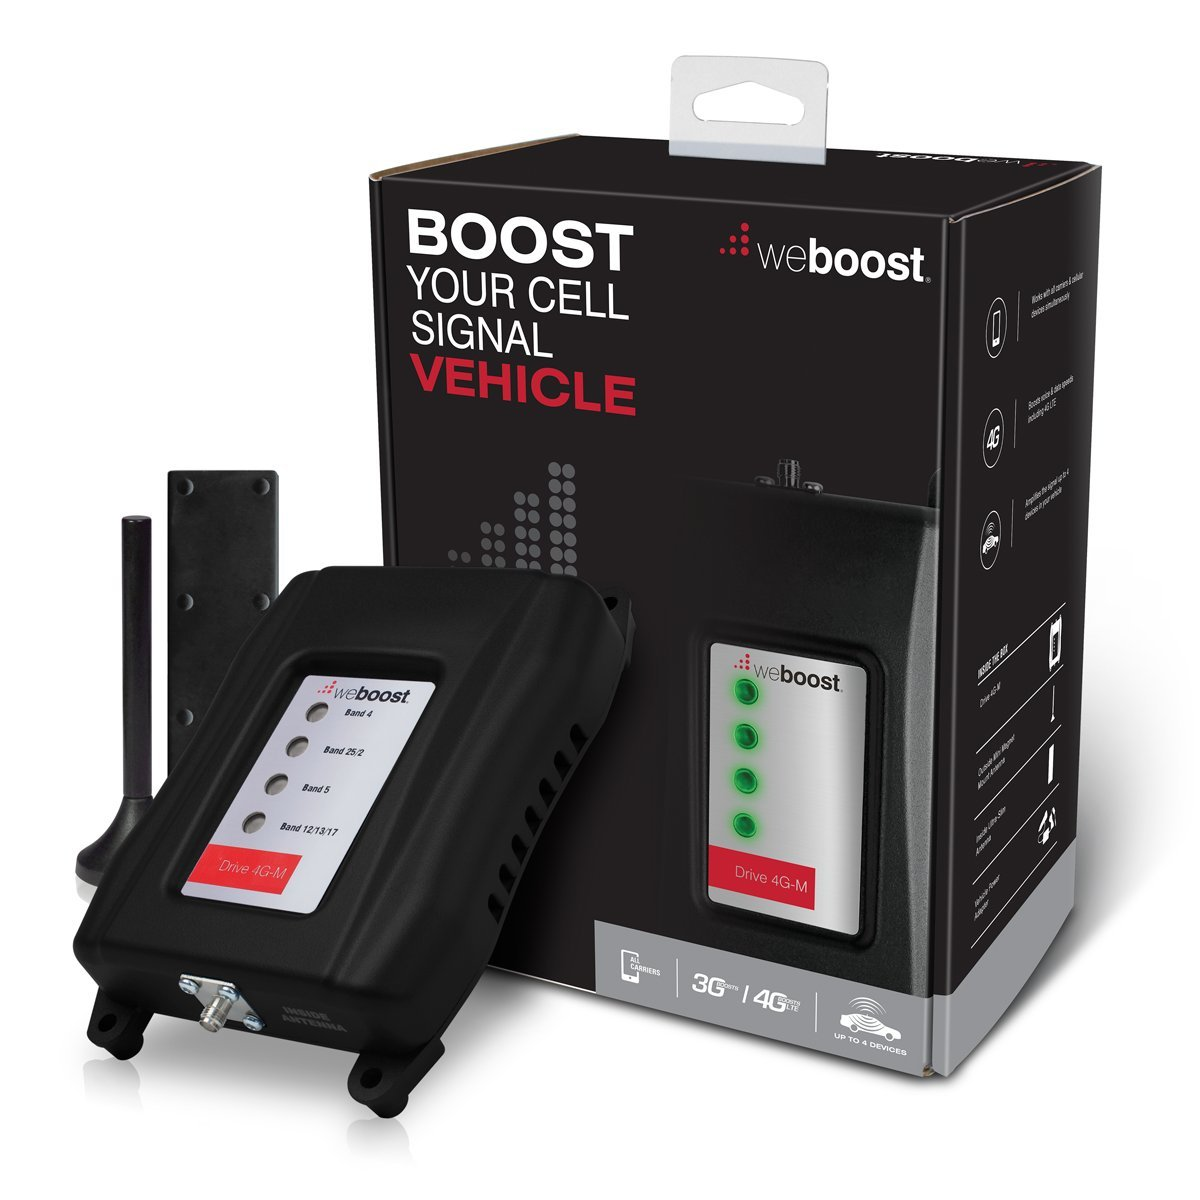 weBoost Drive 4G-M 470108 Vehicle Cell Phone Signal Booster, Cell Booster for Car & Truck, Enhances 4G LTE Cell Signals, Works With All U.S. Wireless Carriers Verizon, AT&T, Sprint, T-Mobile & More